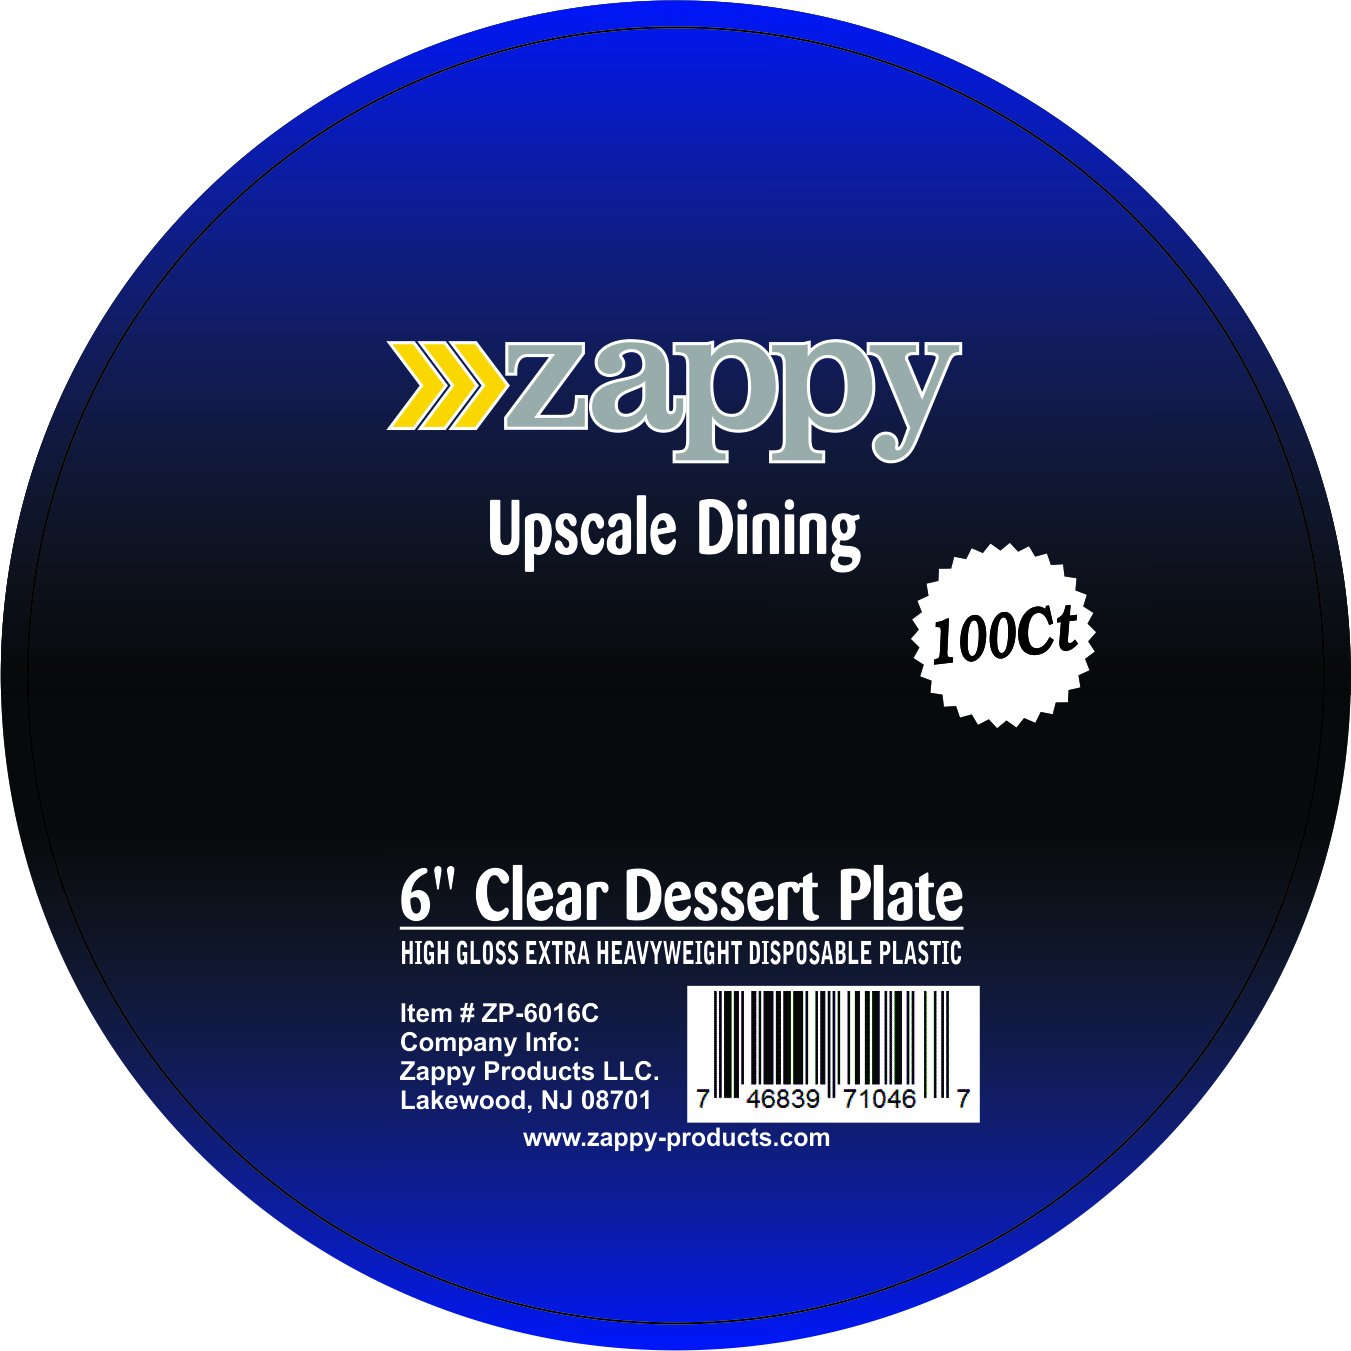 Zappy 100 Disposable Plastic Dessert Plates Premium Quality Plastic Plates, 6'' Hard Disposable Plastic Plates, Clear Appetizer Dinner Party Plates Great Dessert Appetizer Wedding Plates Party Plates